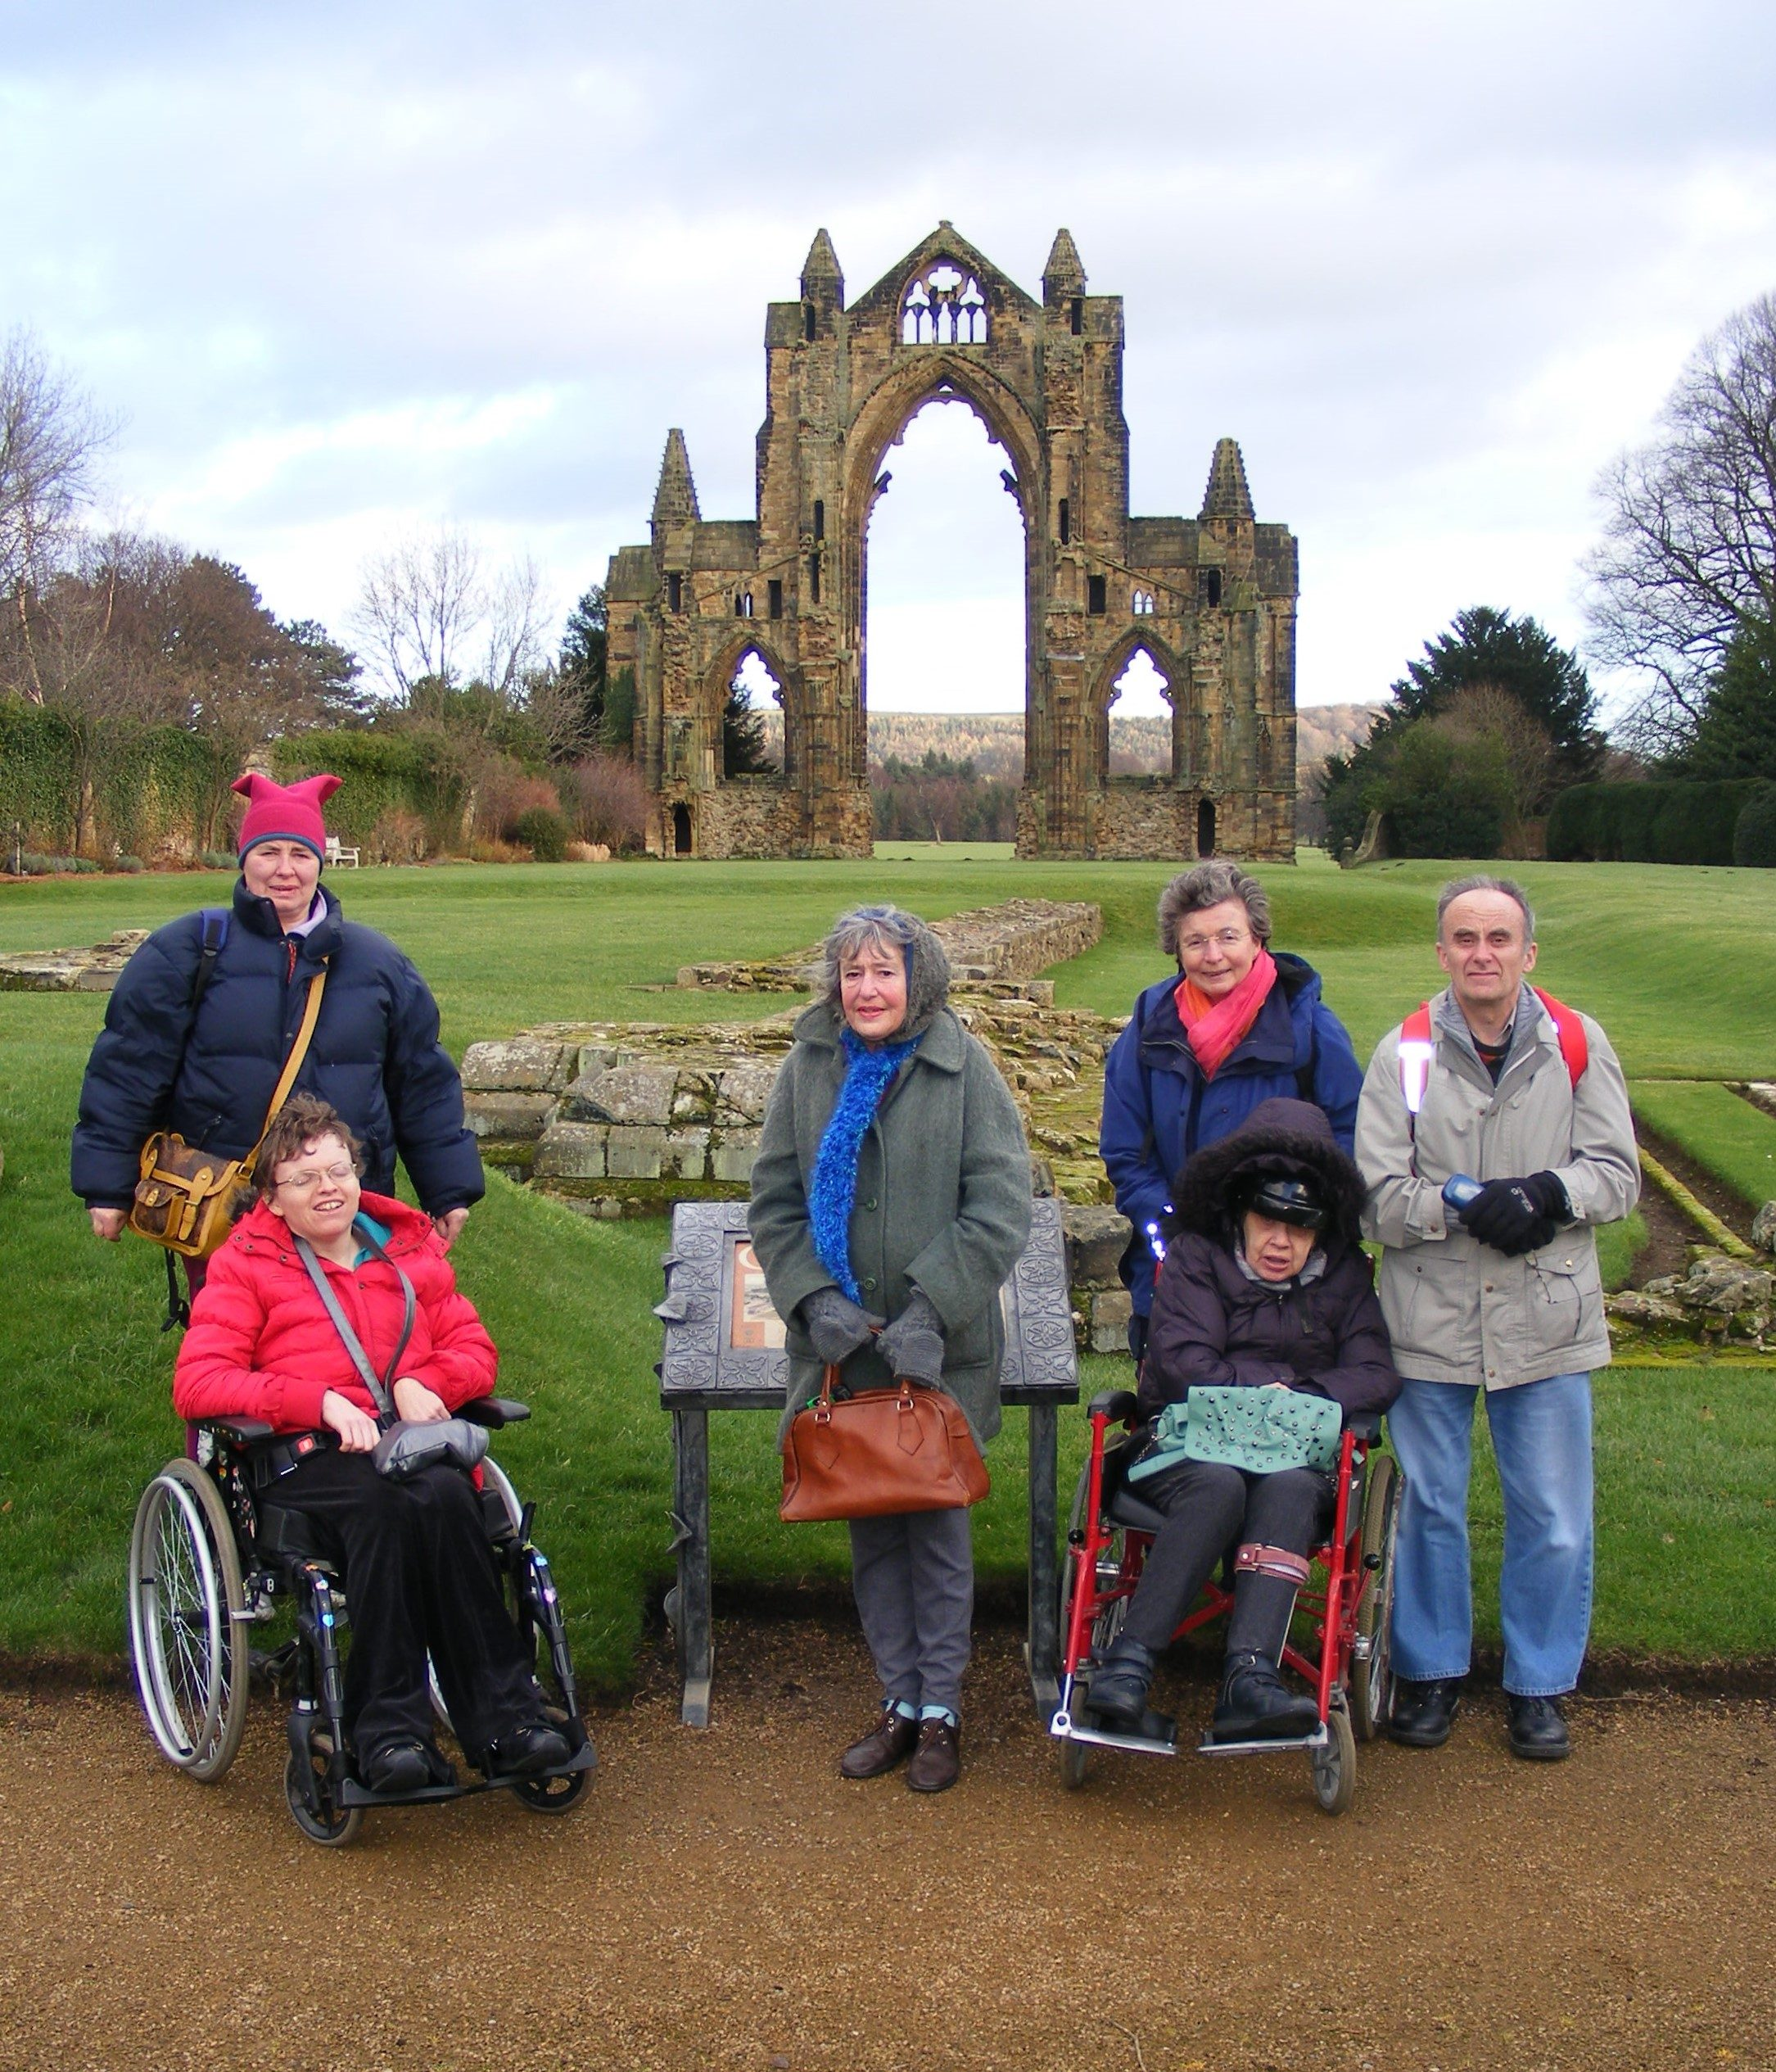 A group, some standing, some in wheelchairs, outside, with Guisborough Priory in the background.